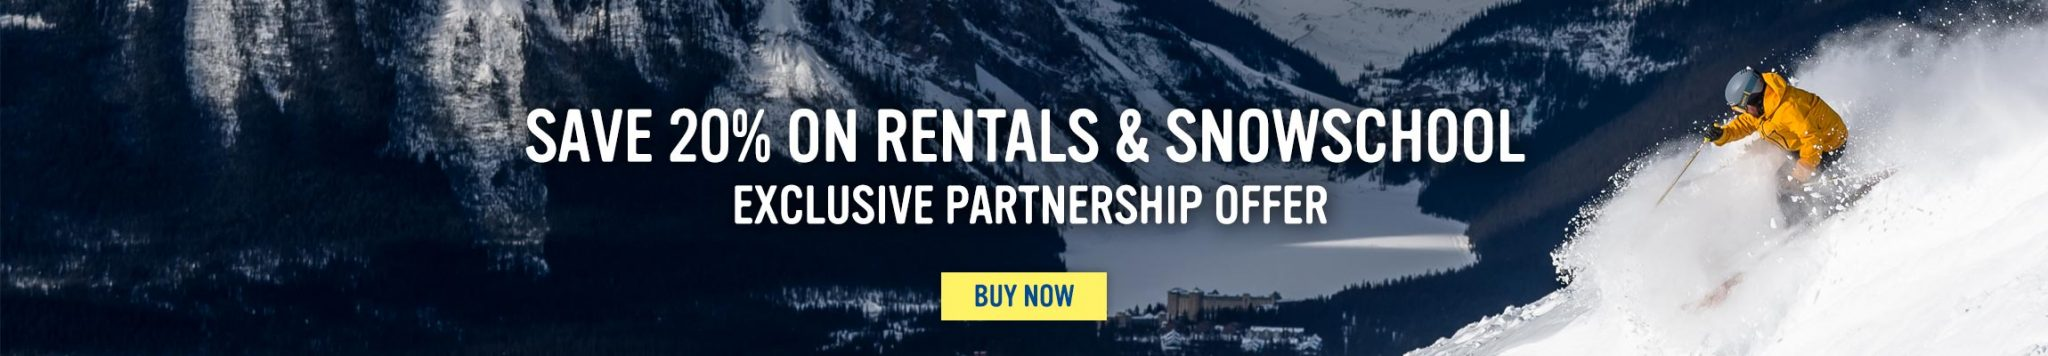 Partners - Rentals and Snow School - Save 20 percent